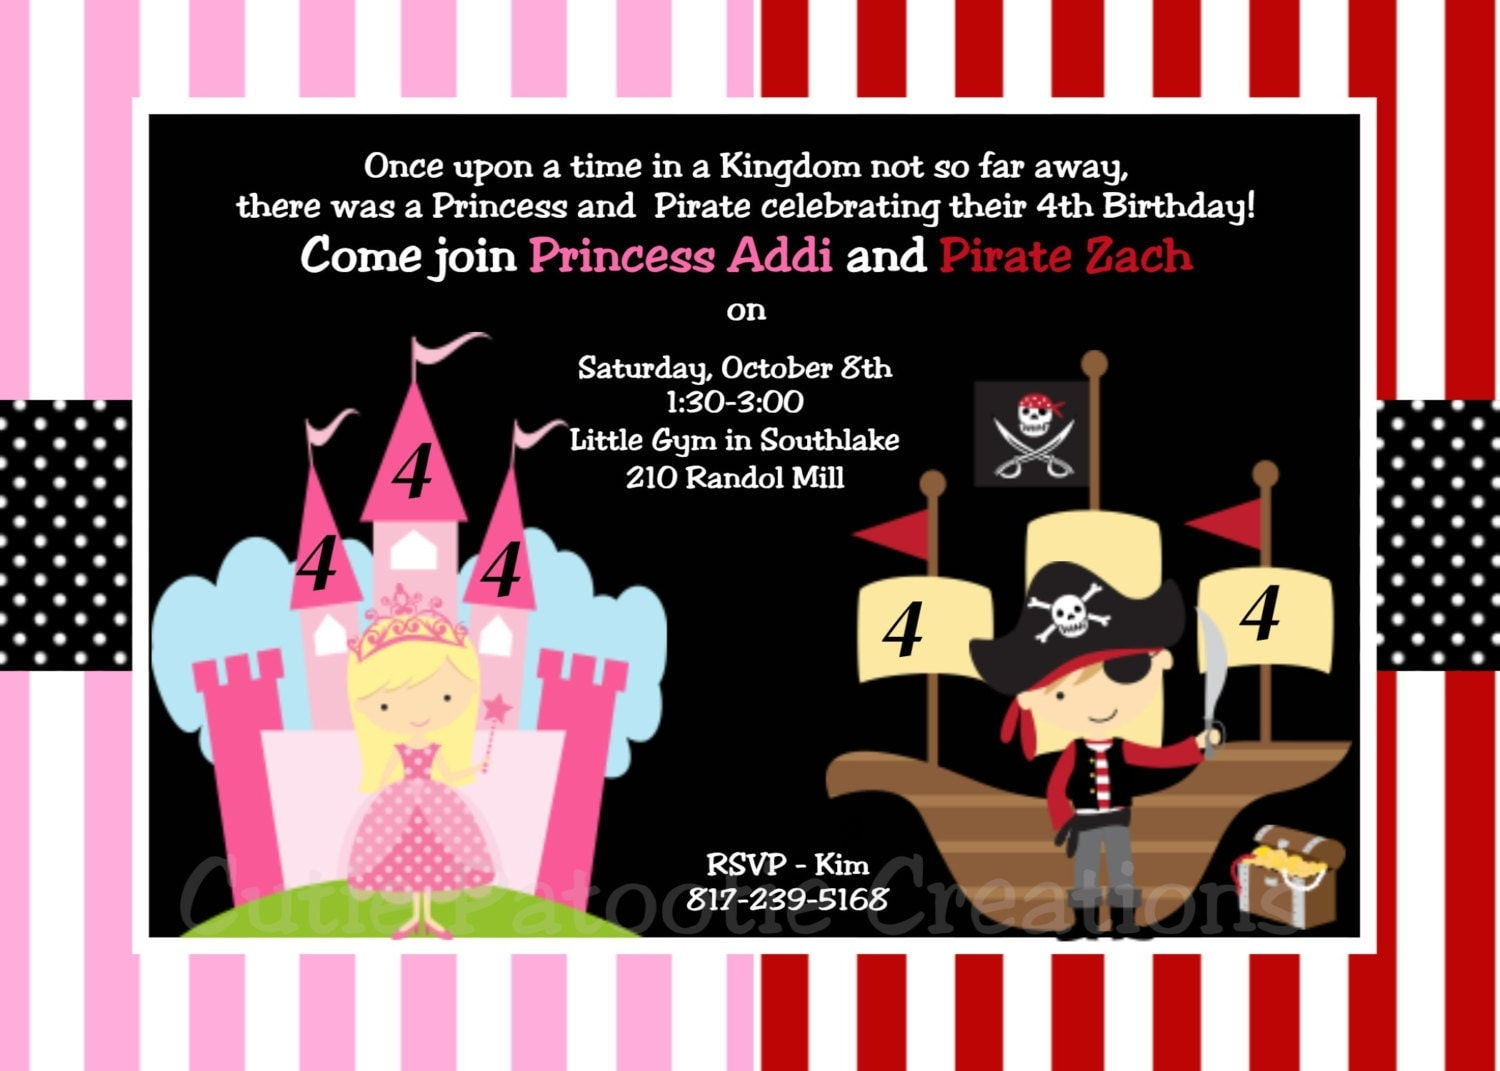 Princess and Pirate Birthday Invitation Princess and Pirate – Princess and Pirate Birthday Invitations